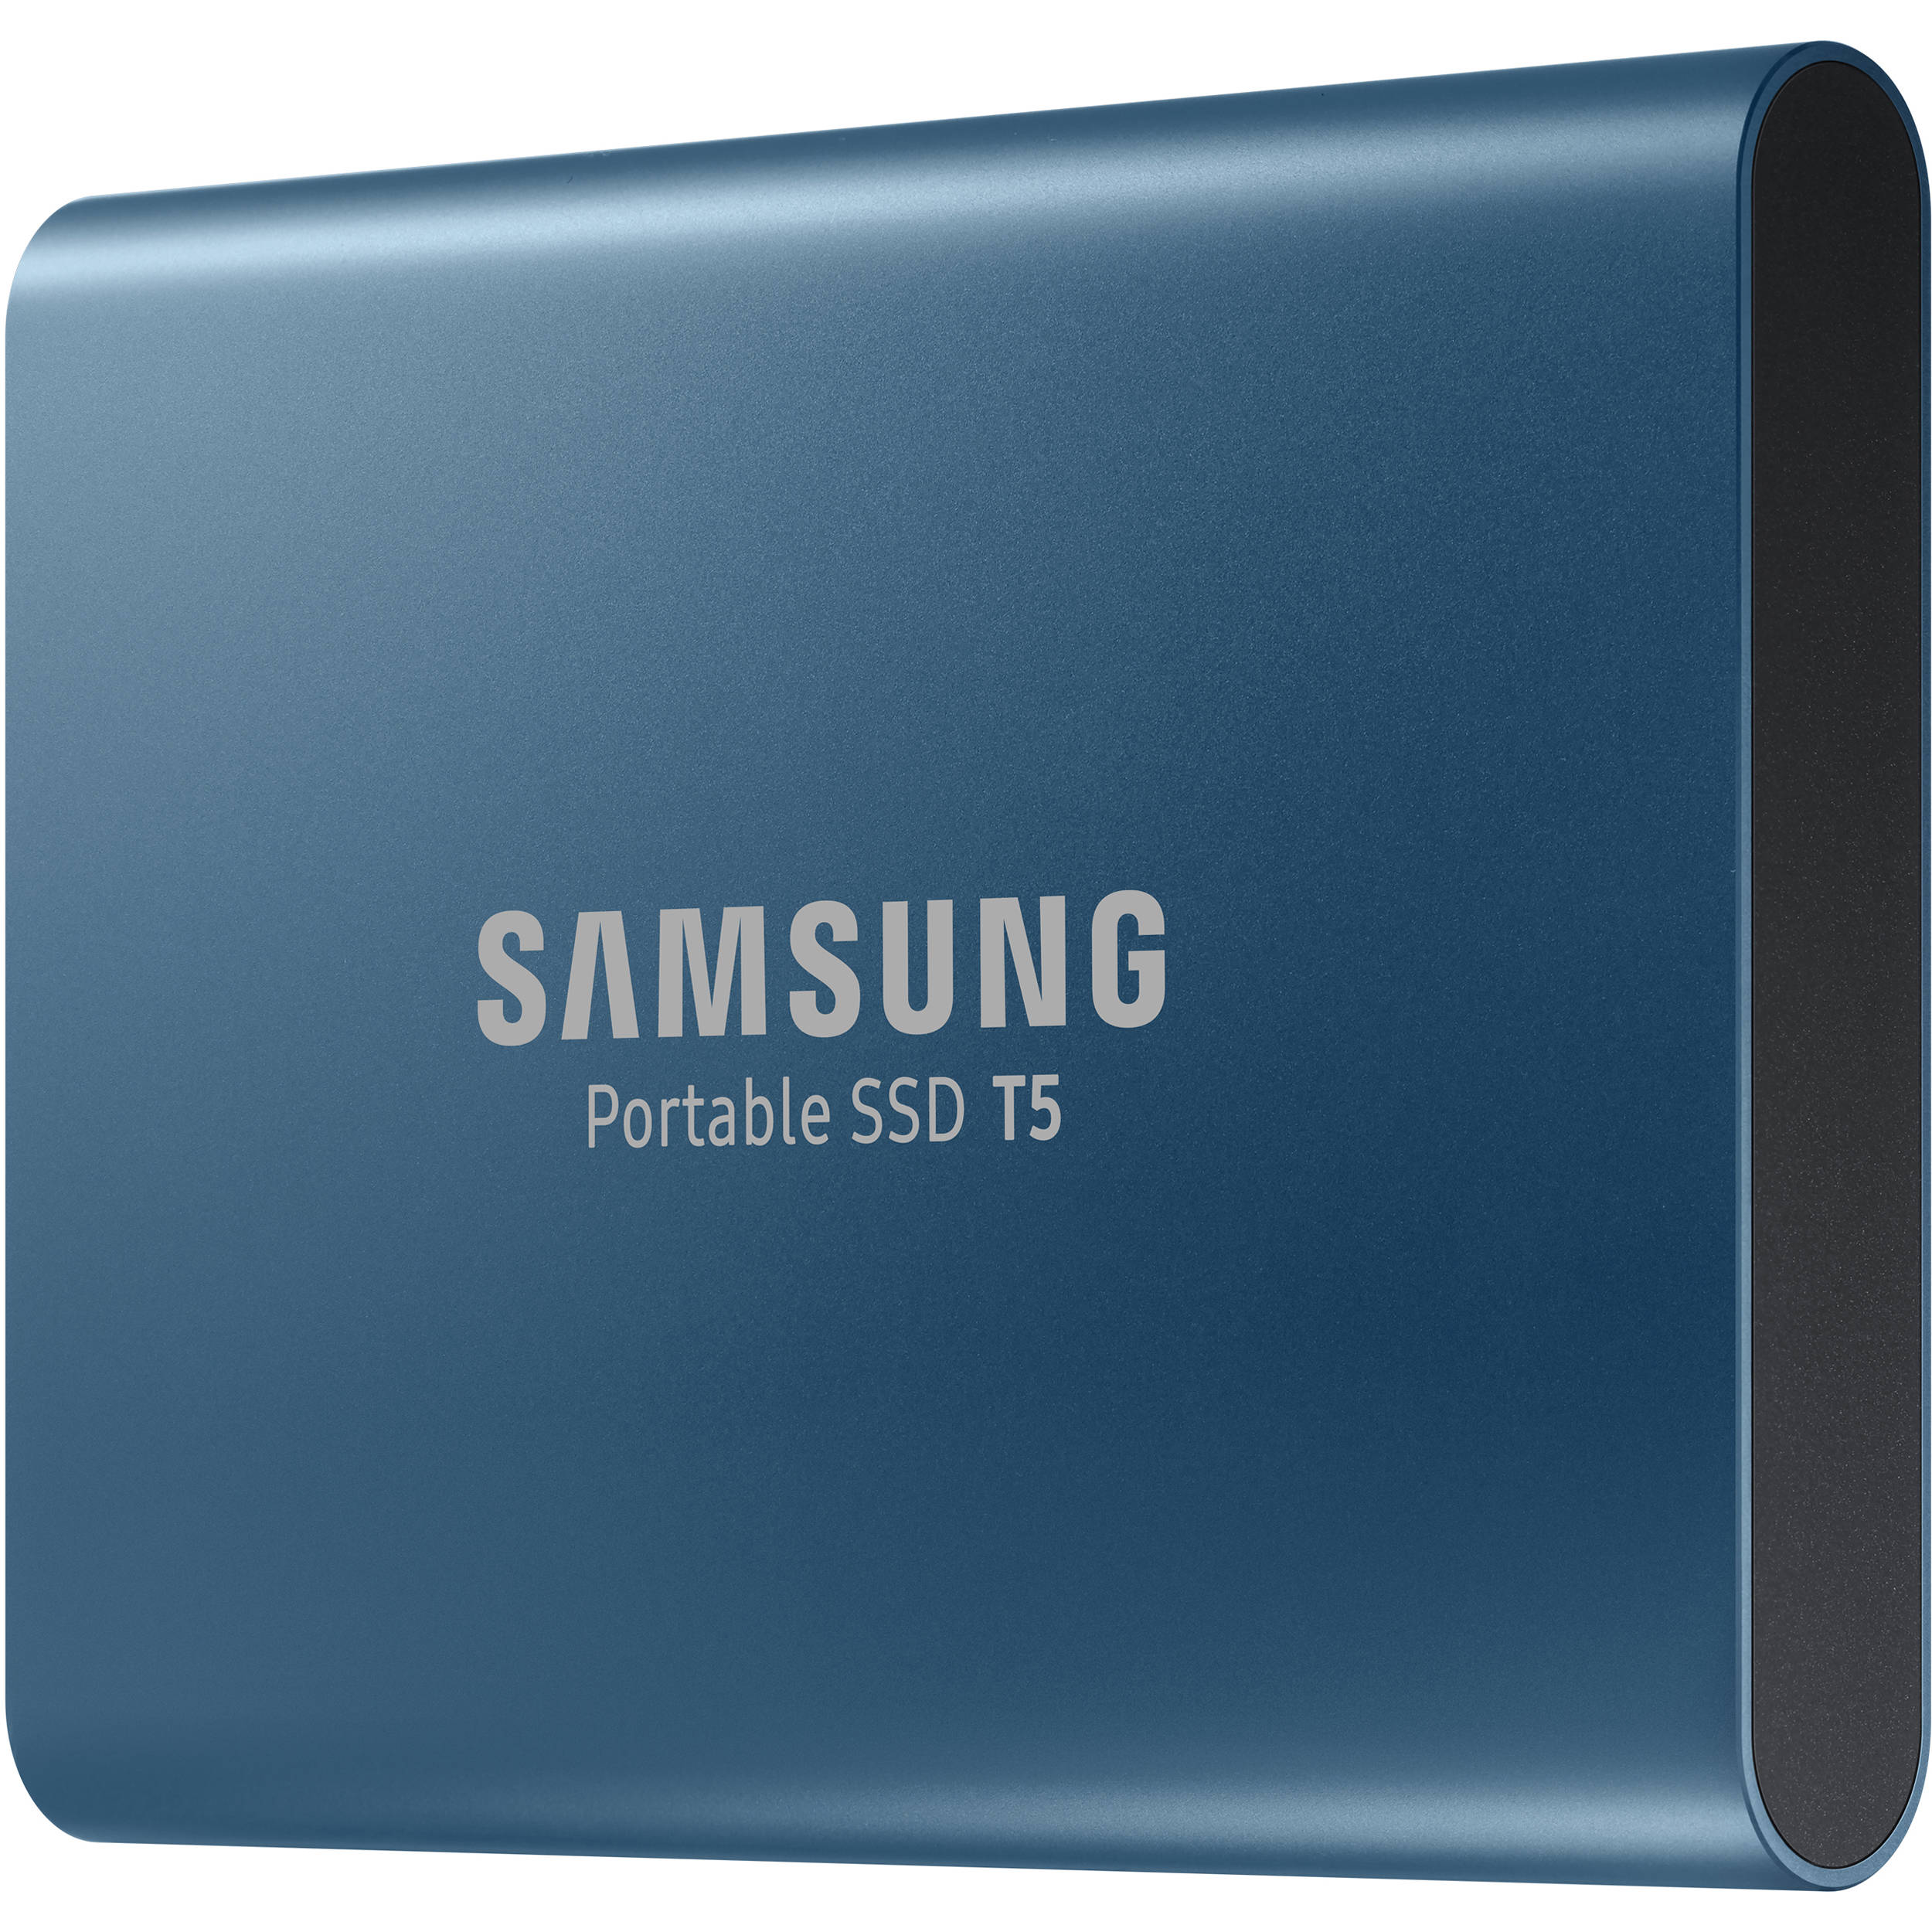 samsung portable ssd t5 manual